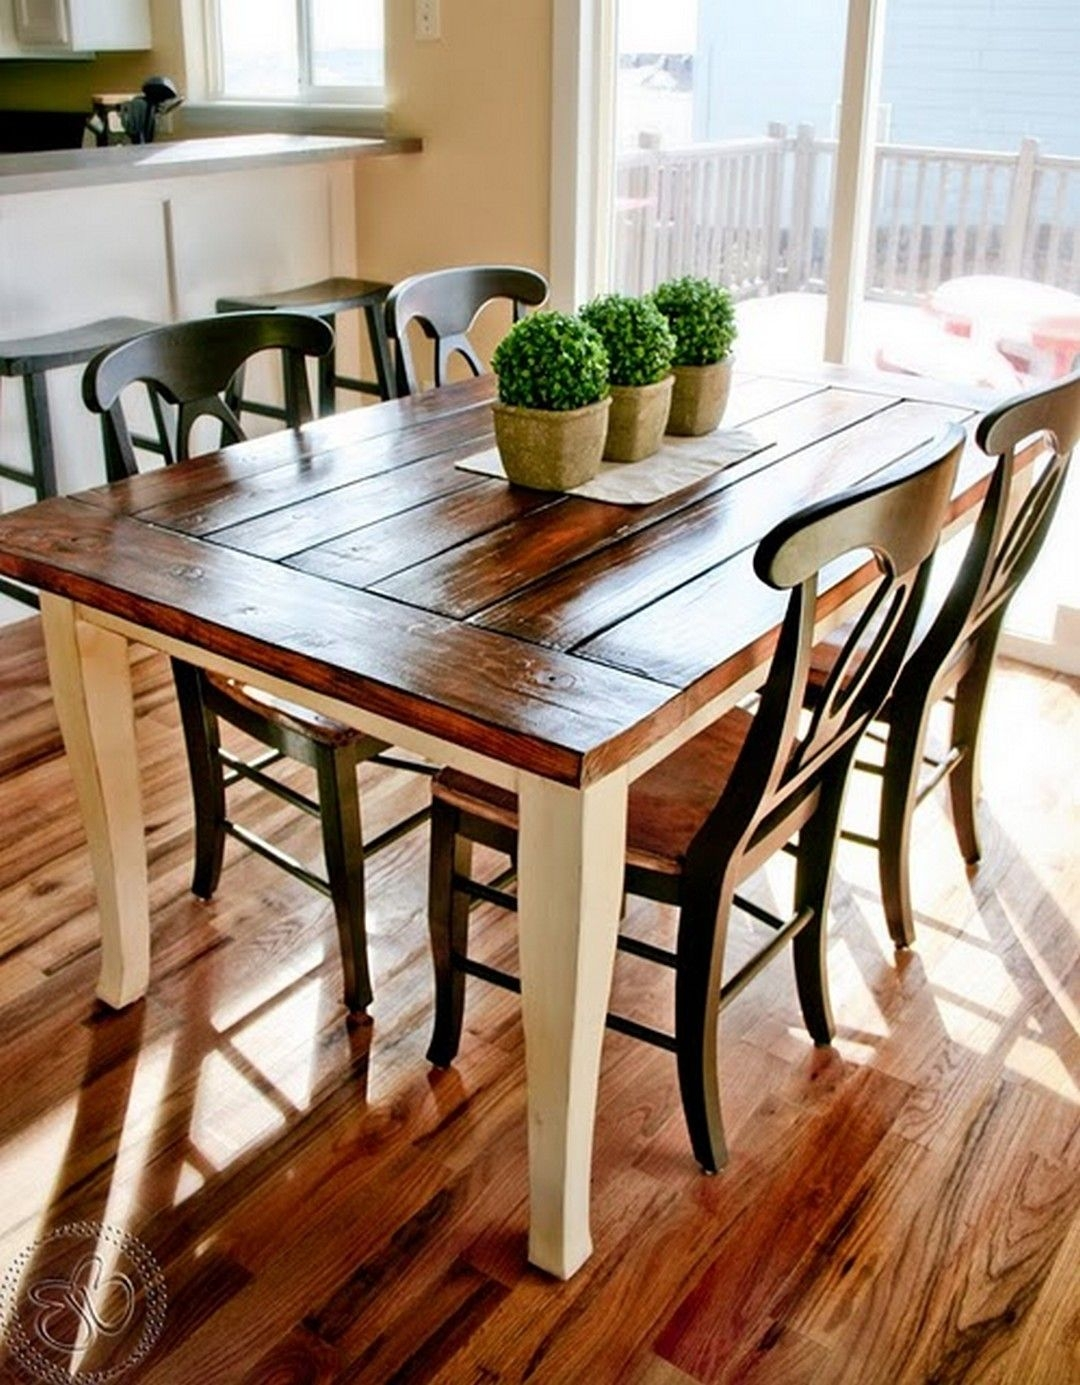 farmhouse kitchen tables sprouted book style table and chairs ideas on foter